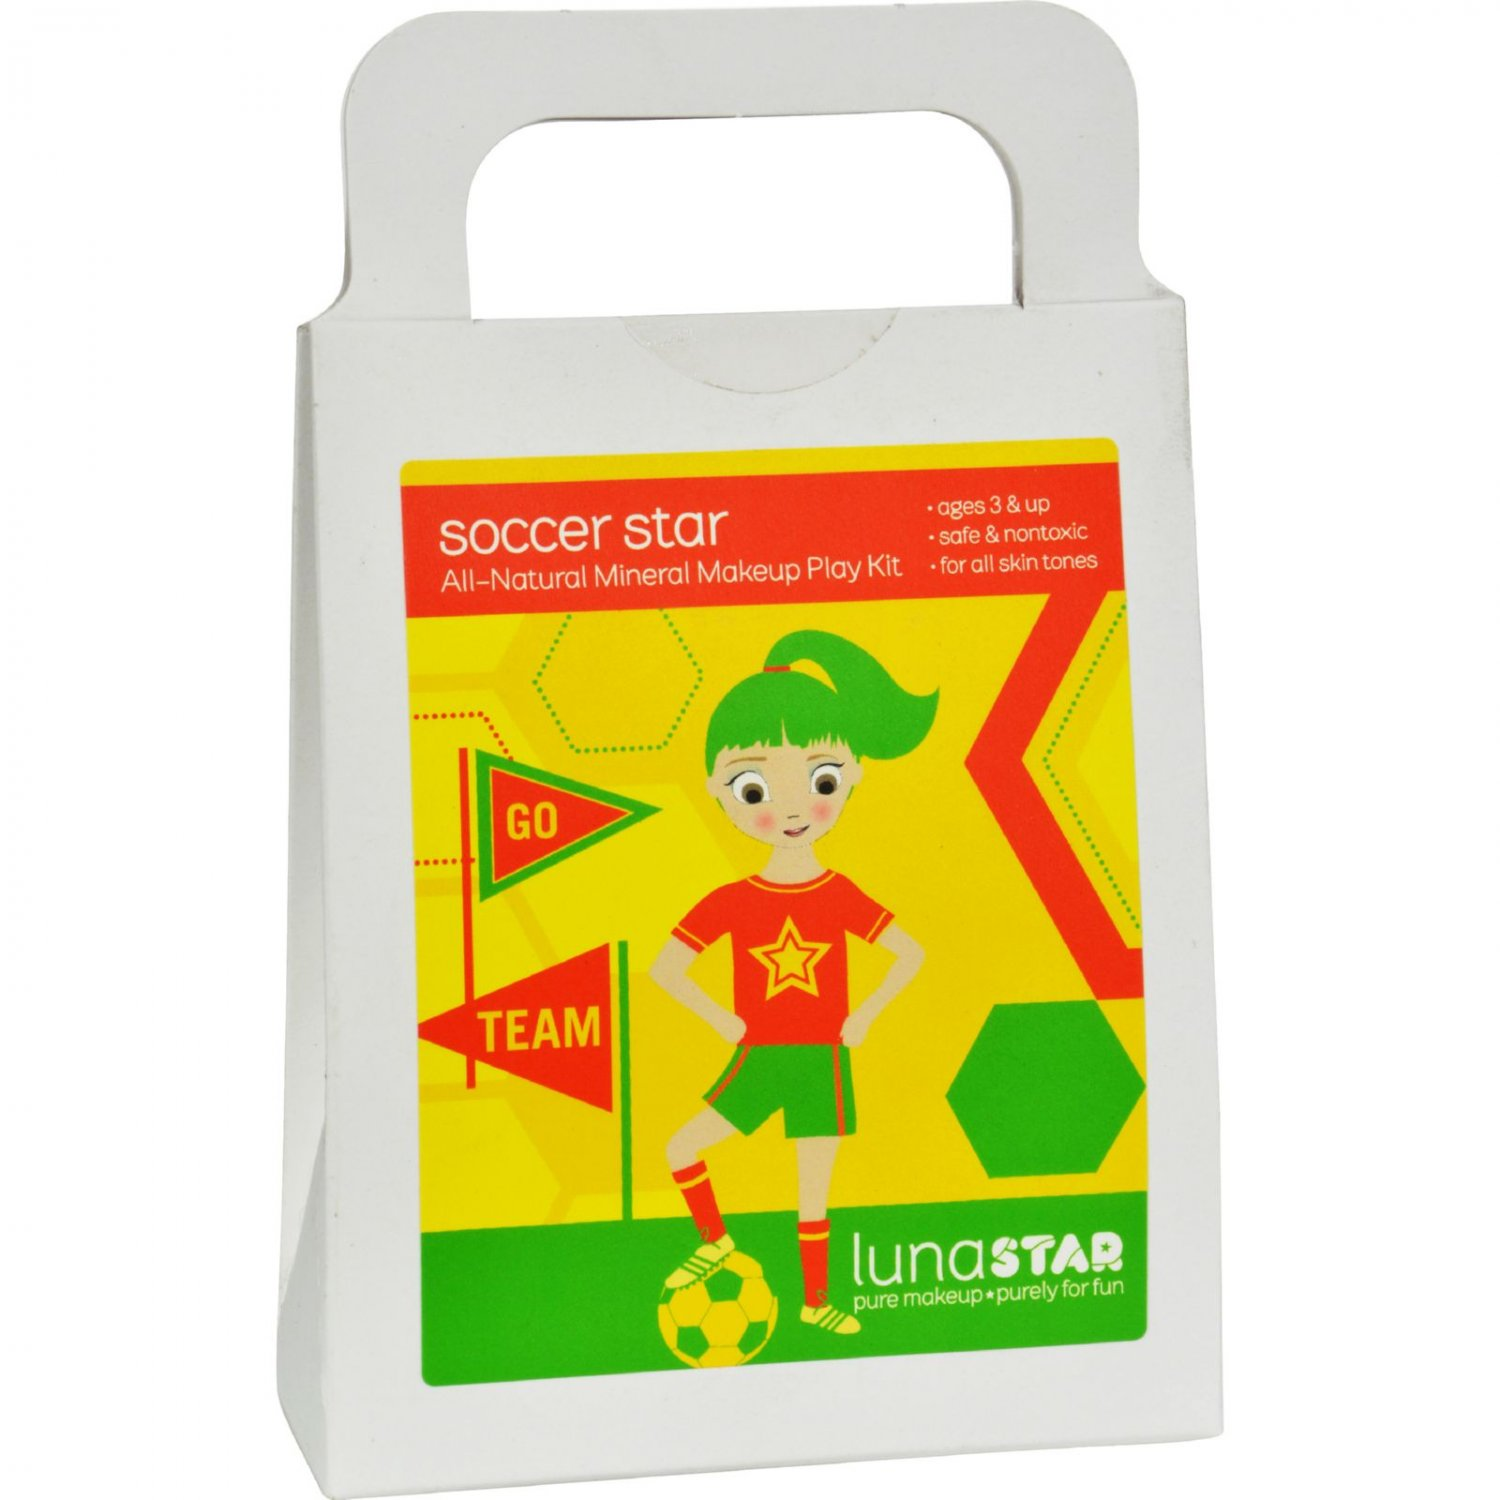 Lunastar Play Makeup Kit - Soccer Star